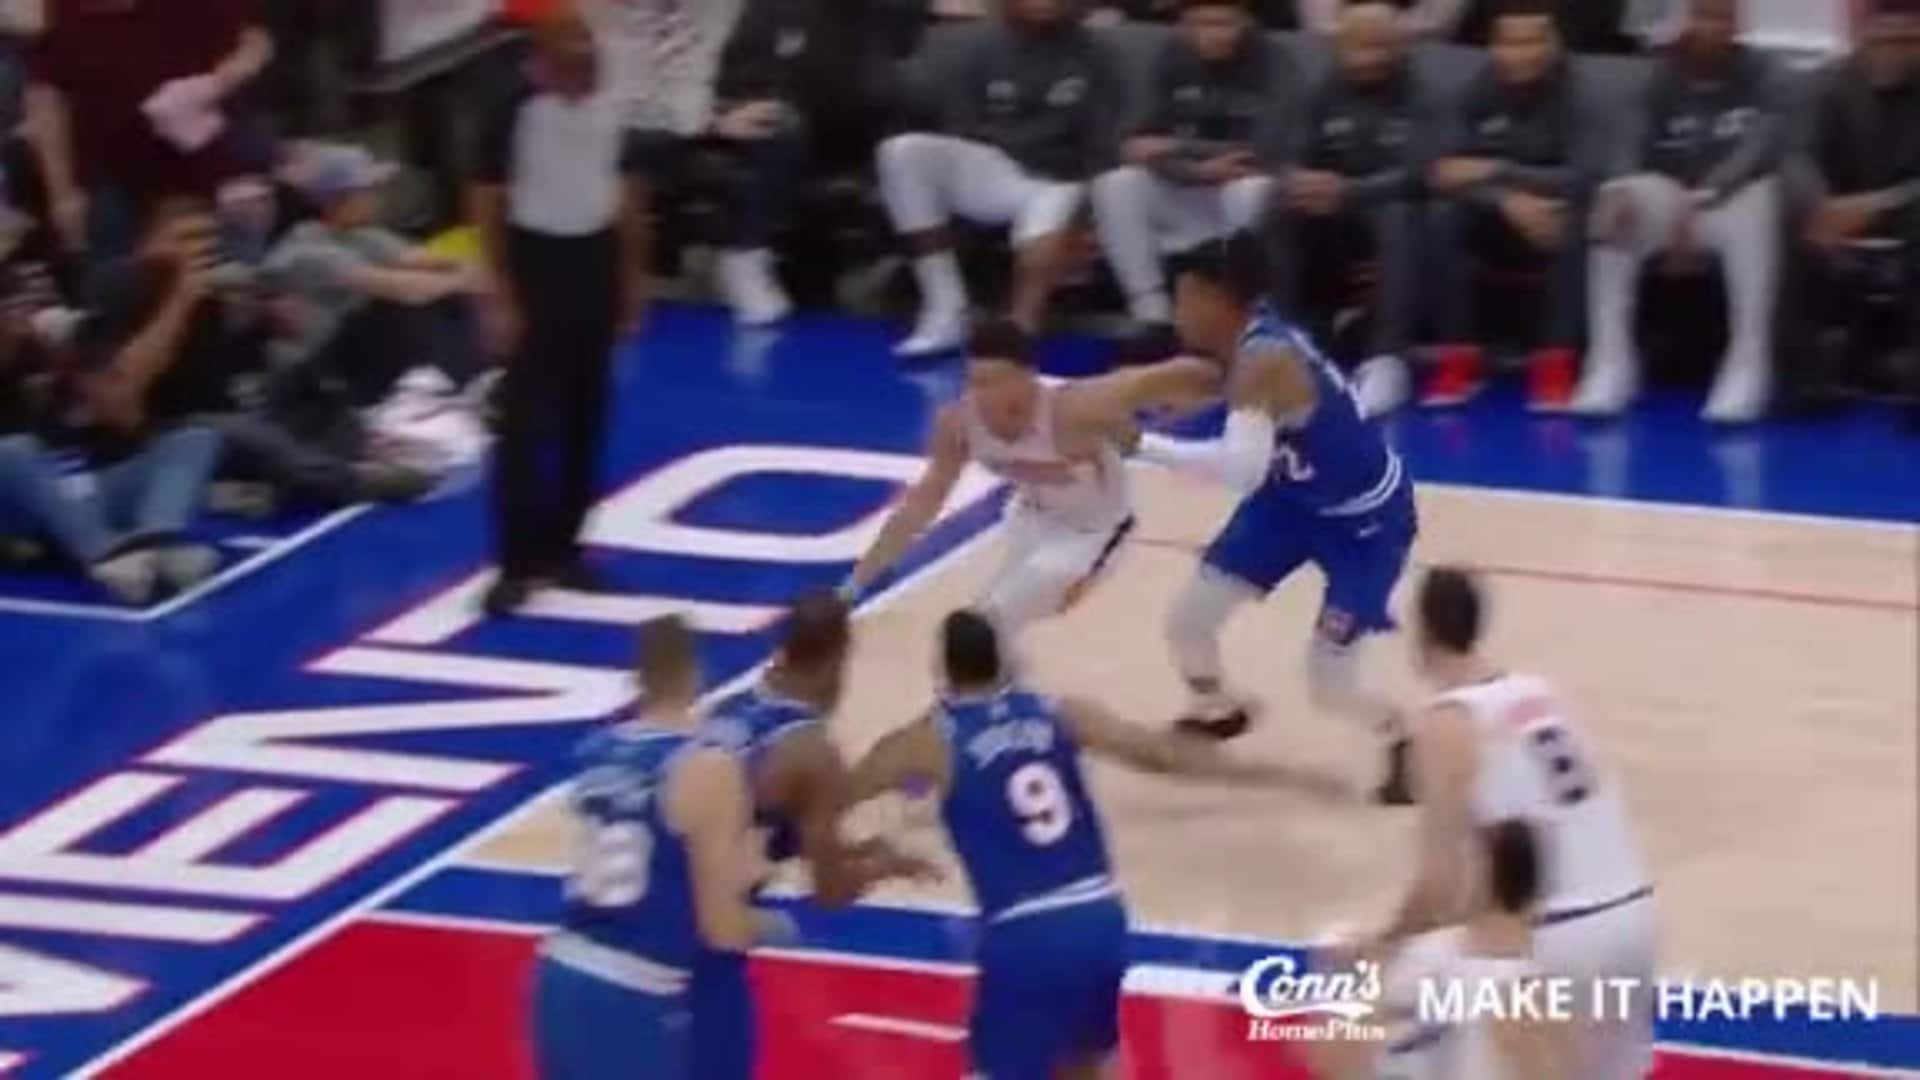 Conn's Make it Happen Play: Booker Behind-the-Back Pass to Kaminsky